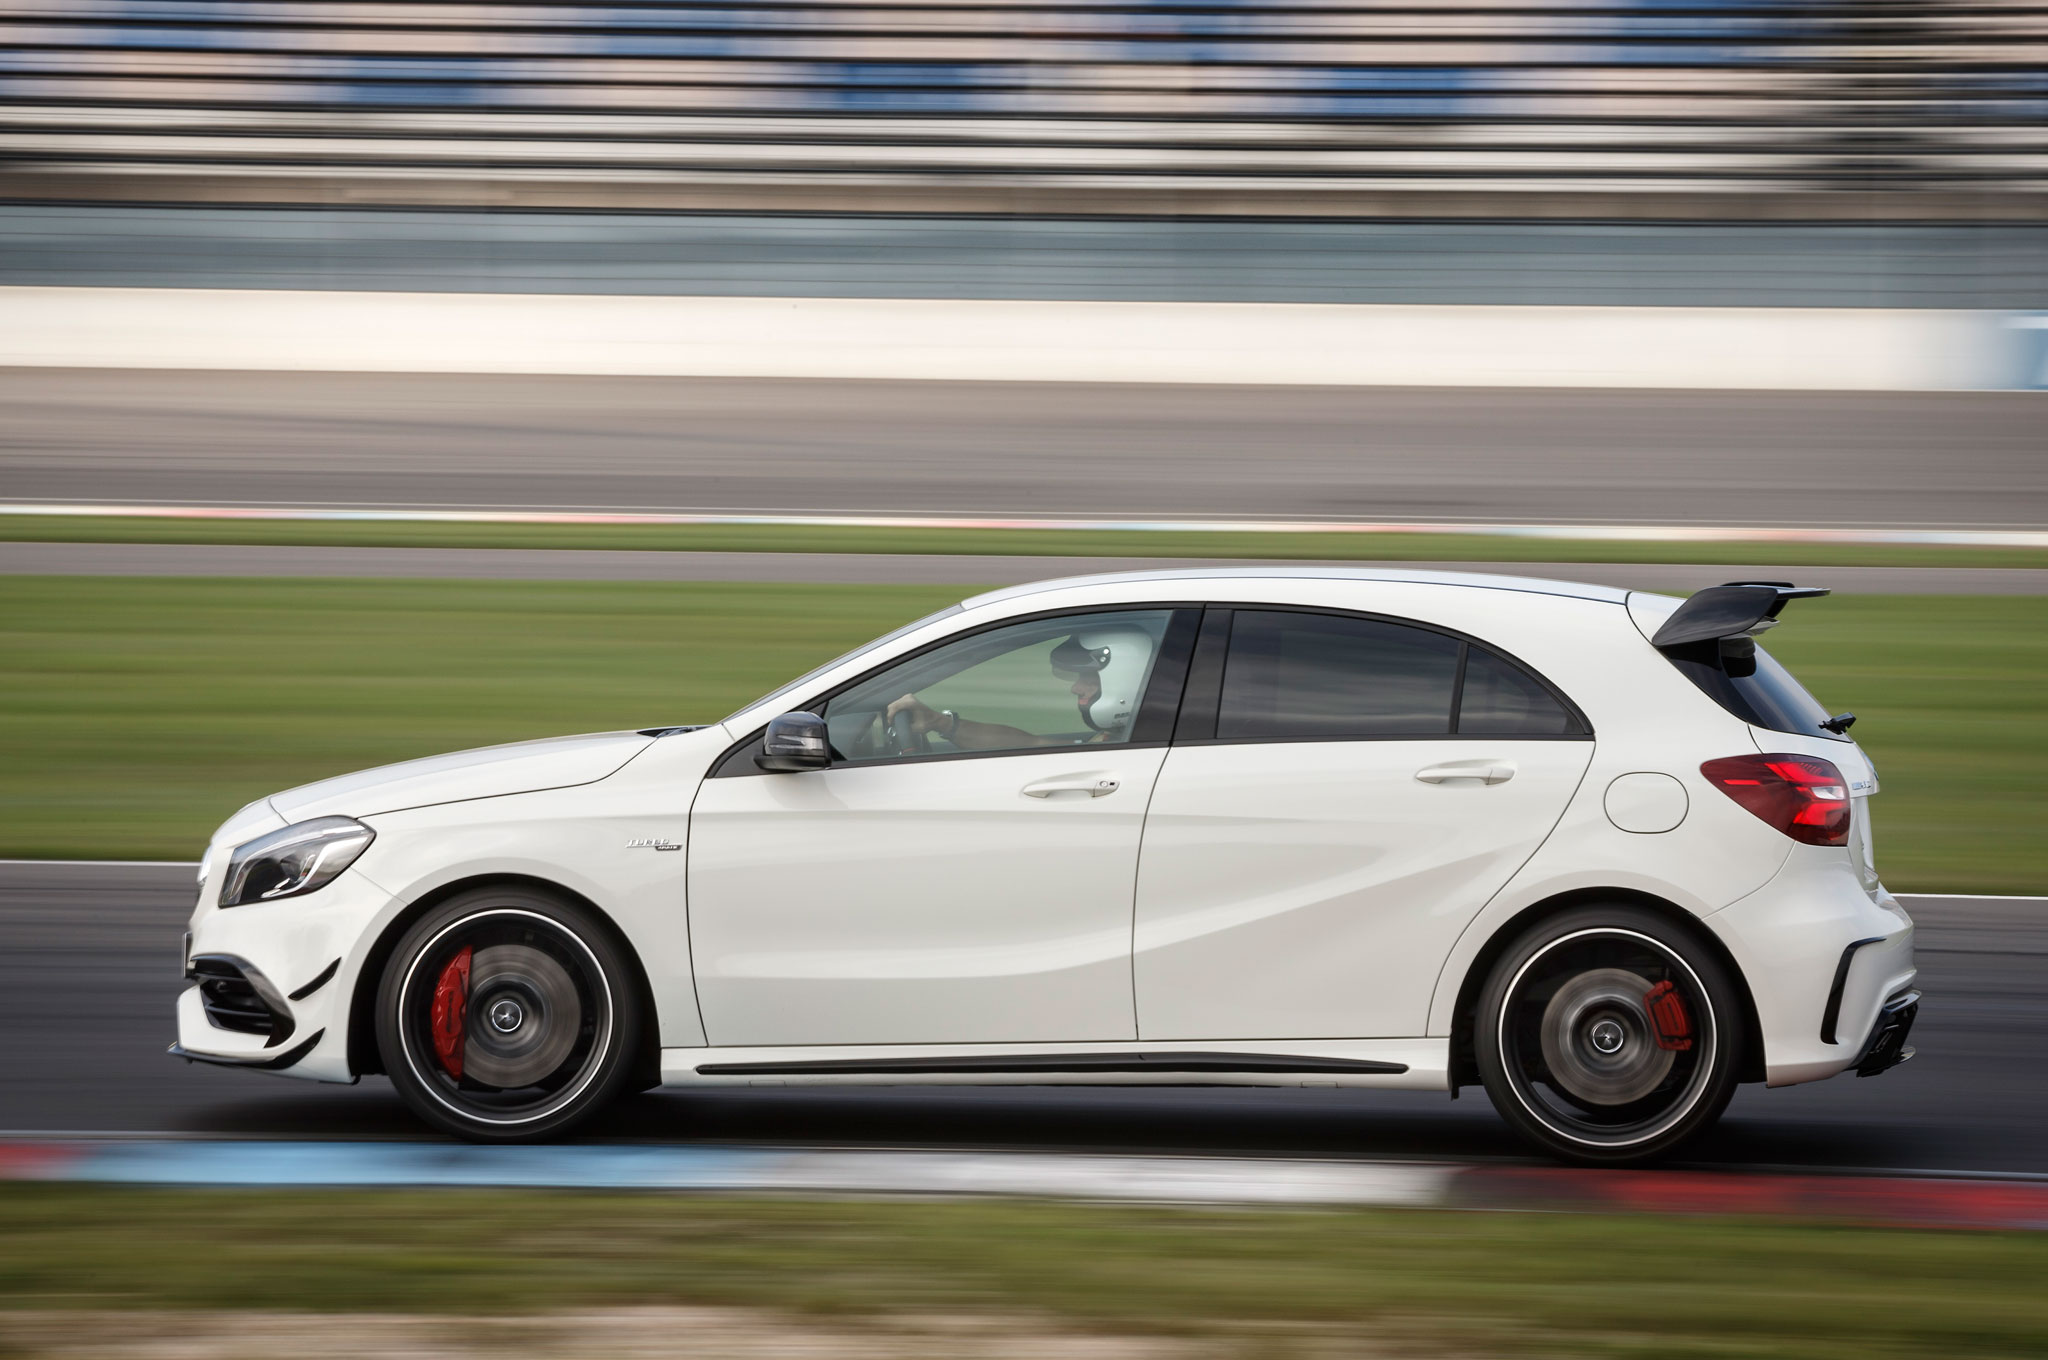 http://st.automobilemag.com/uploads/sites/11/2015/09/2016-Mercedes-AMG-A45-4Matic-side-profile-in-motion-02.jpg